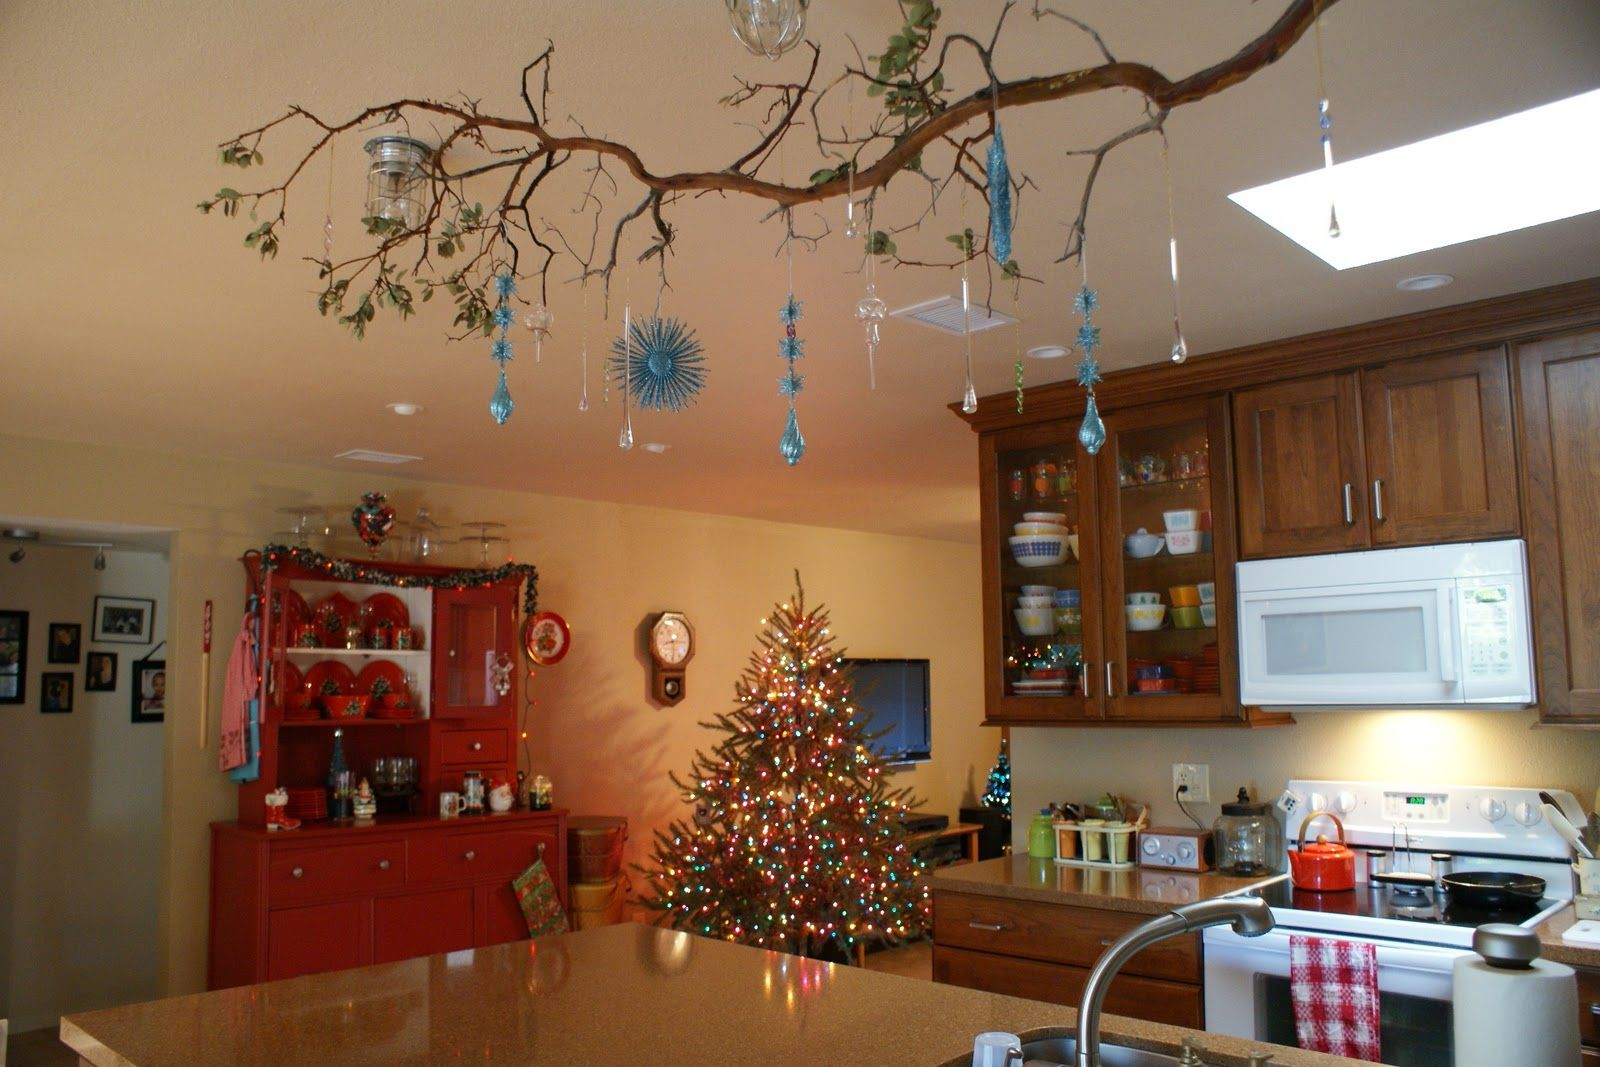 Decorating With Blue For Christmas Coming Over And We Re Decorating The Tree And Celebrating My Birthda Tree Branch Decor Christmas Branches Branch Decor